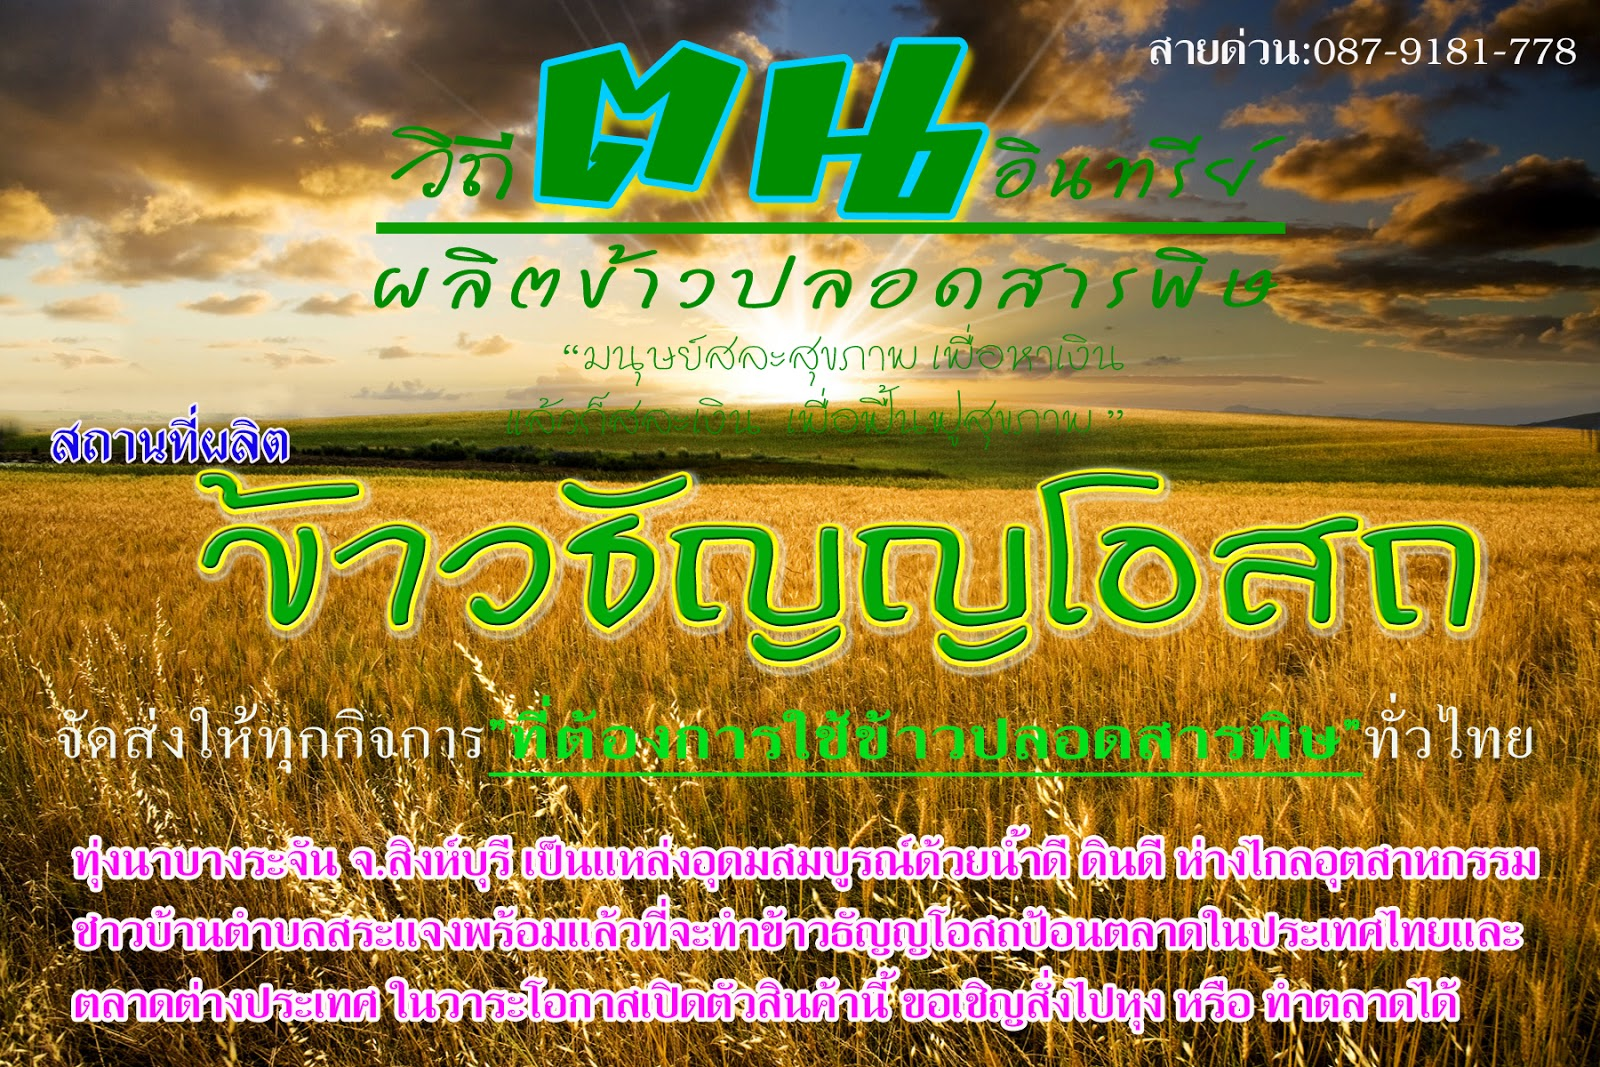 https://www.facebook.com/organicricesingburi/photos/pb.149446338511559.-2207520000.1394249836./484767924979397/?type=3&theater